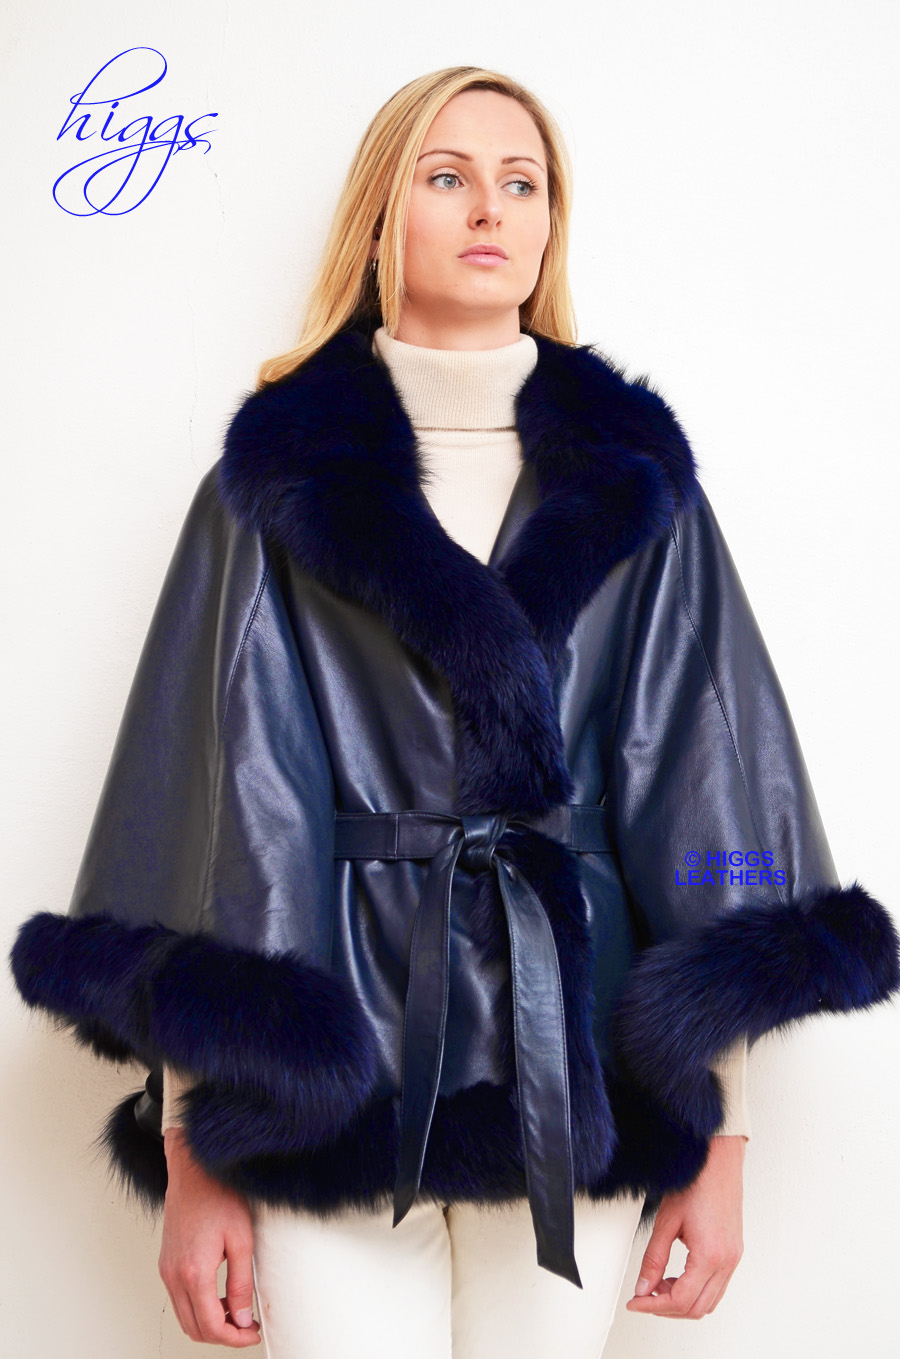 Higgs Leathers {34' to 50' bust}  Marianna (ladies Designer Navy Leather Cape Jacket) DEVISTATIONALLY GORGEOUS!!